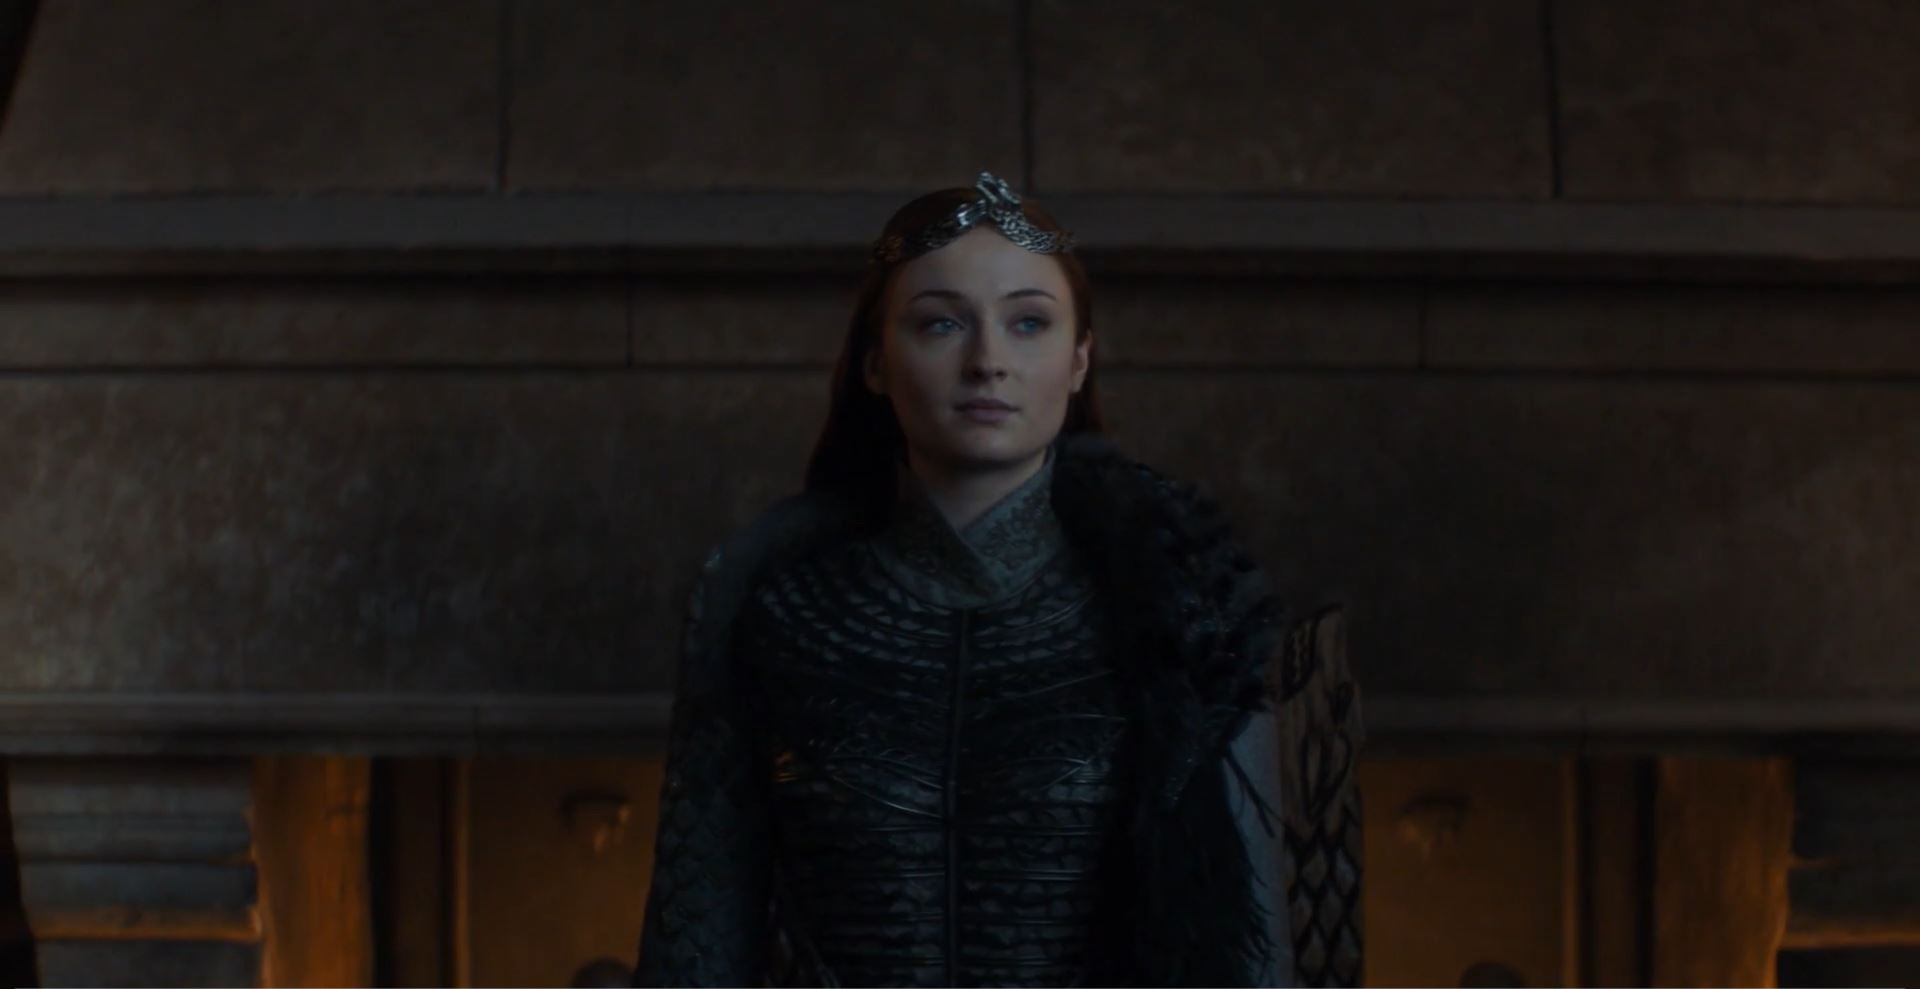 Game of Thrones S08E06 Review - Queen Sansa of the North